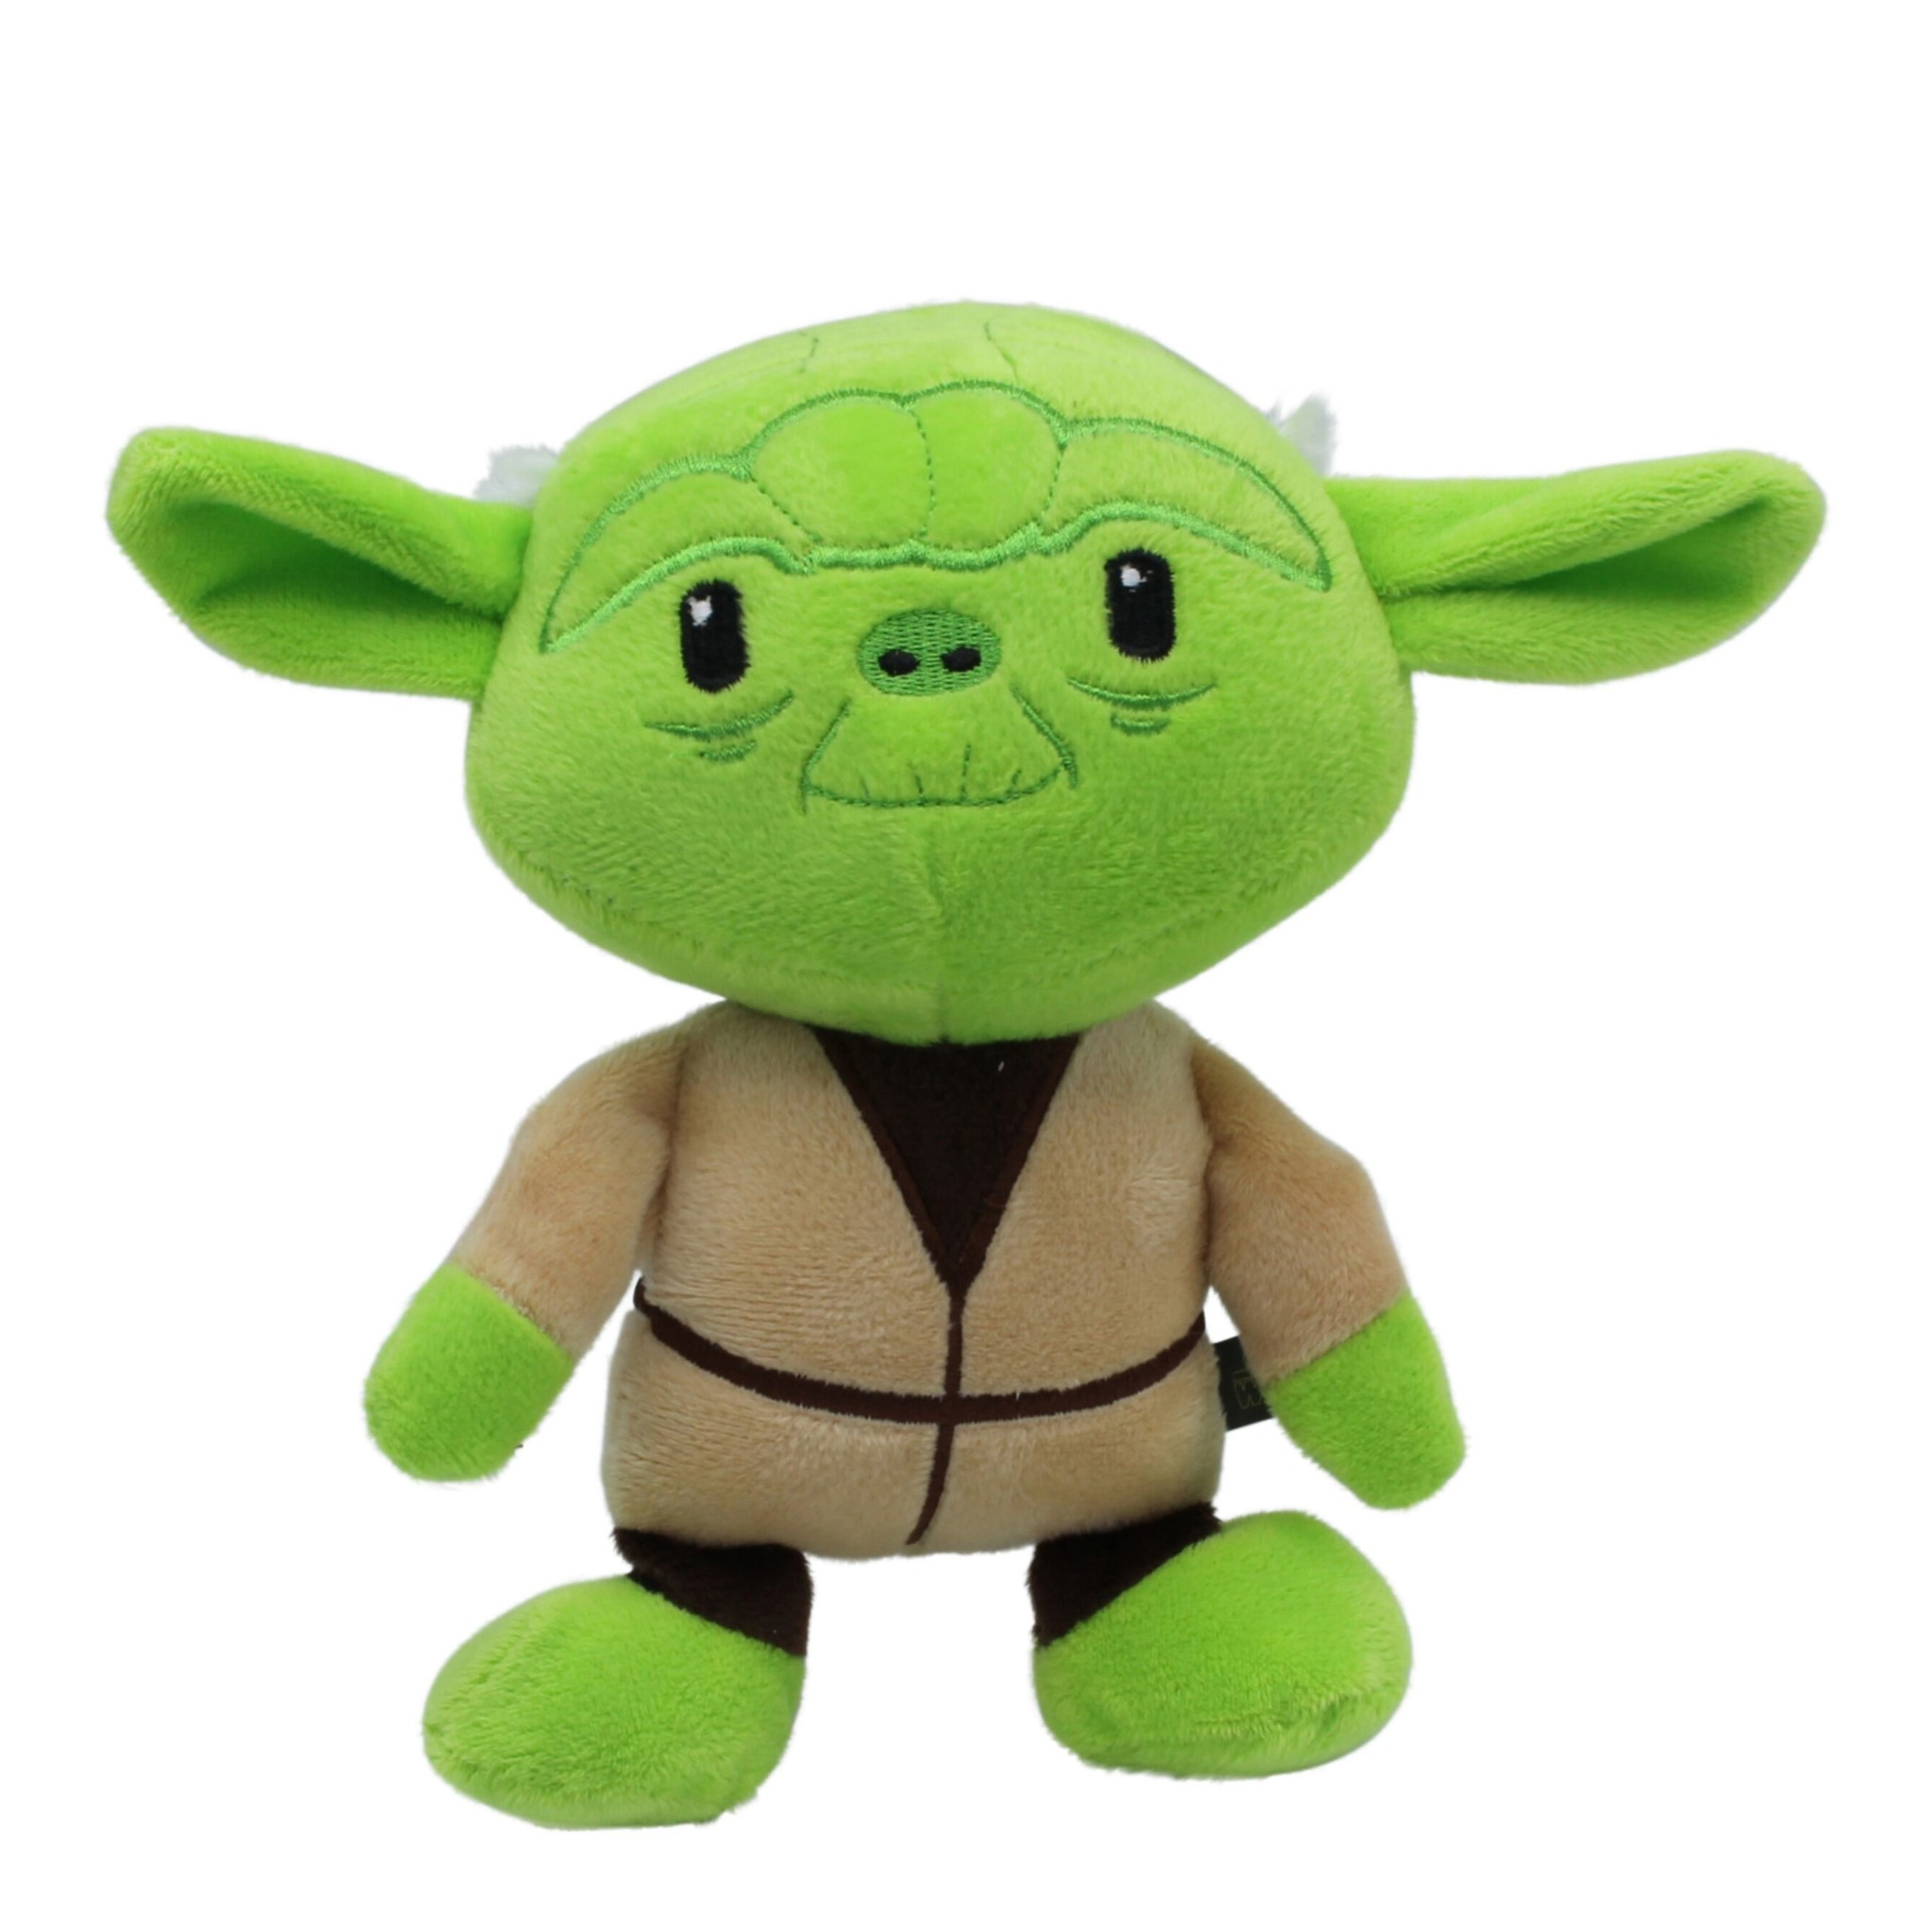 Fetch For Pets Star Wars Yoda Plush Figure